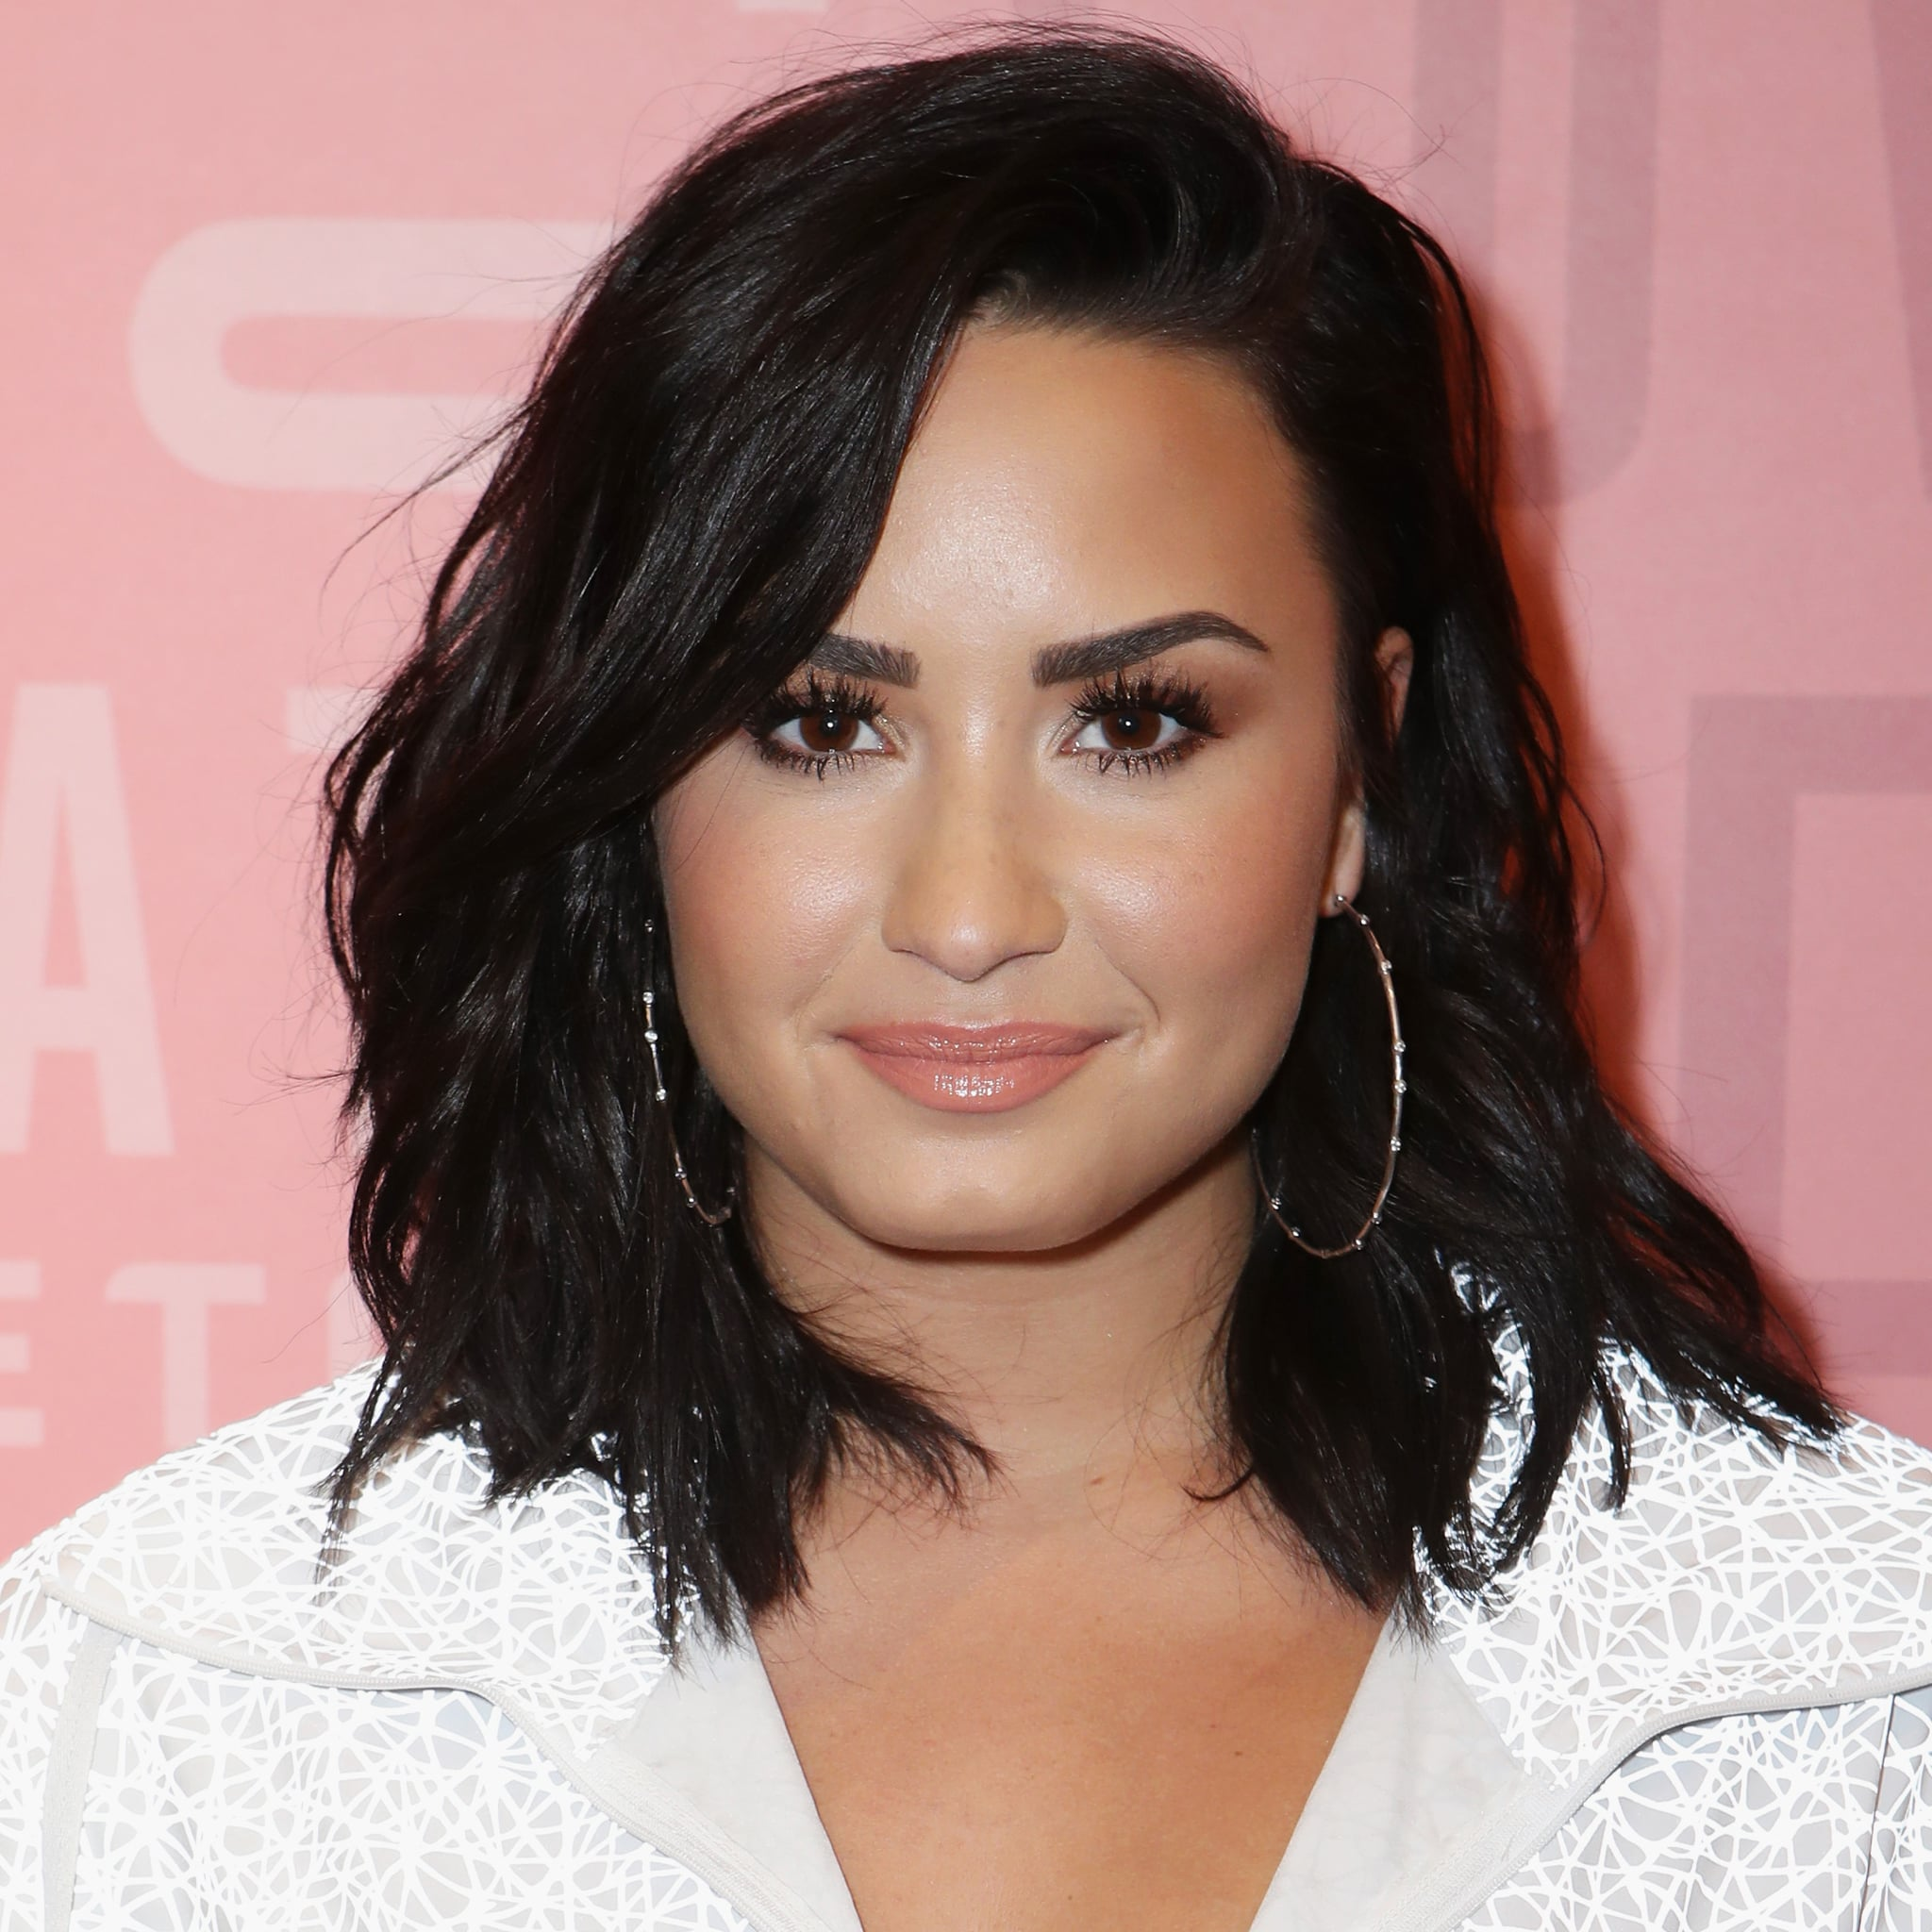 Best quotes by Demi Lovato